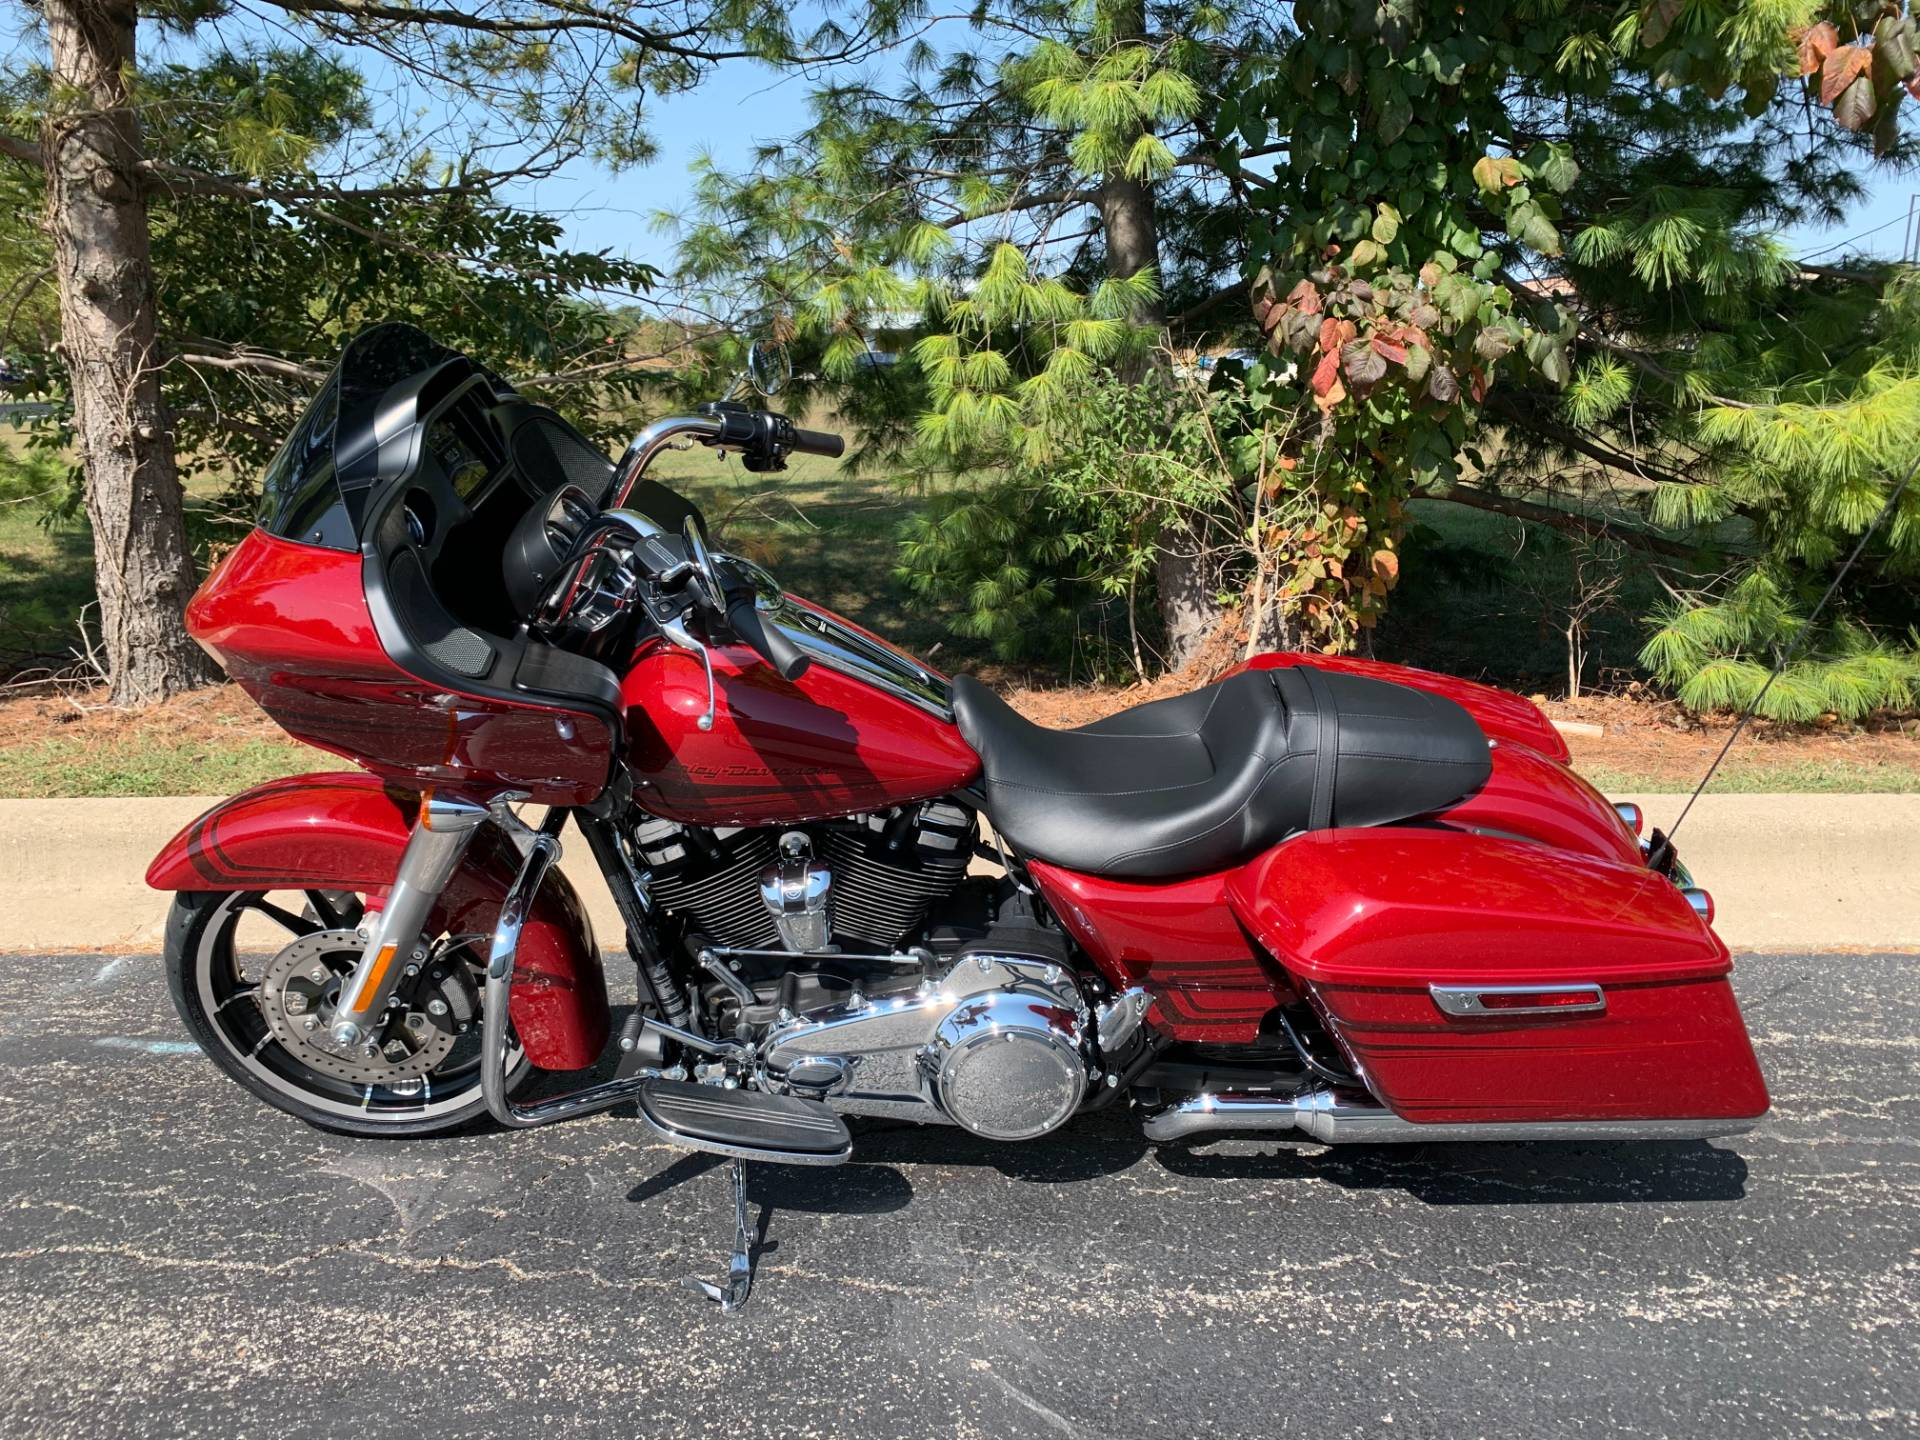 2020 Harley-Davidson Road Glide in Forsyth, Illinois - Photo 4